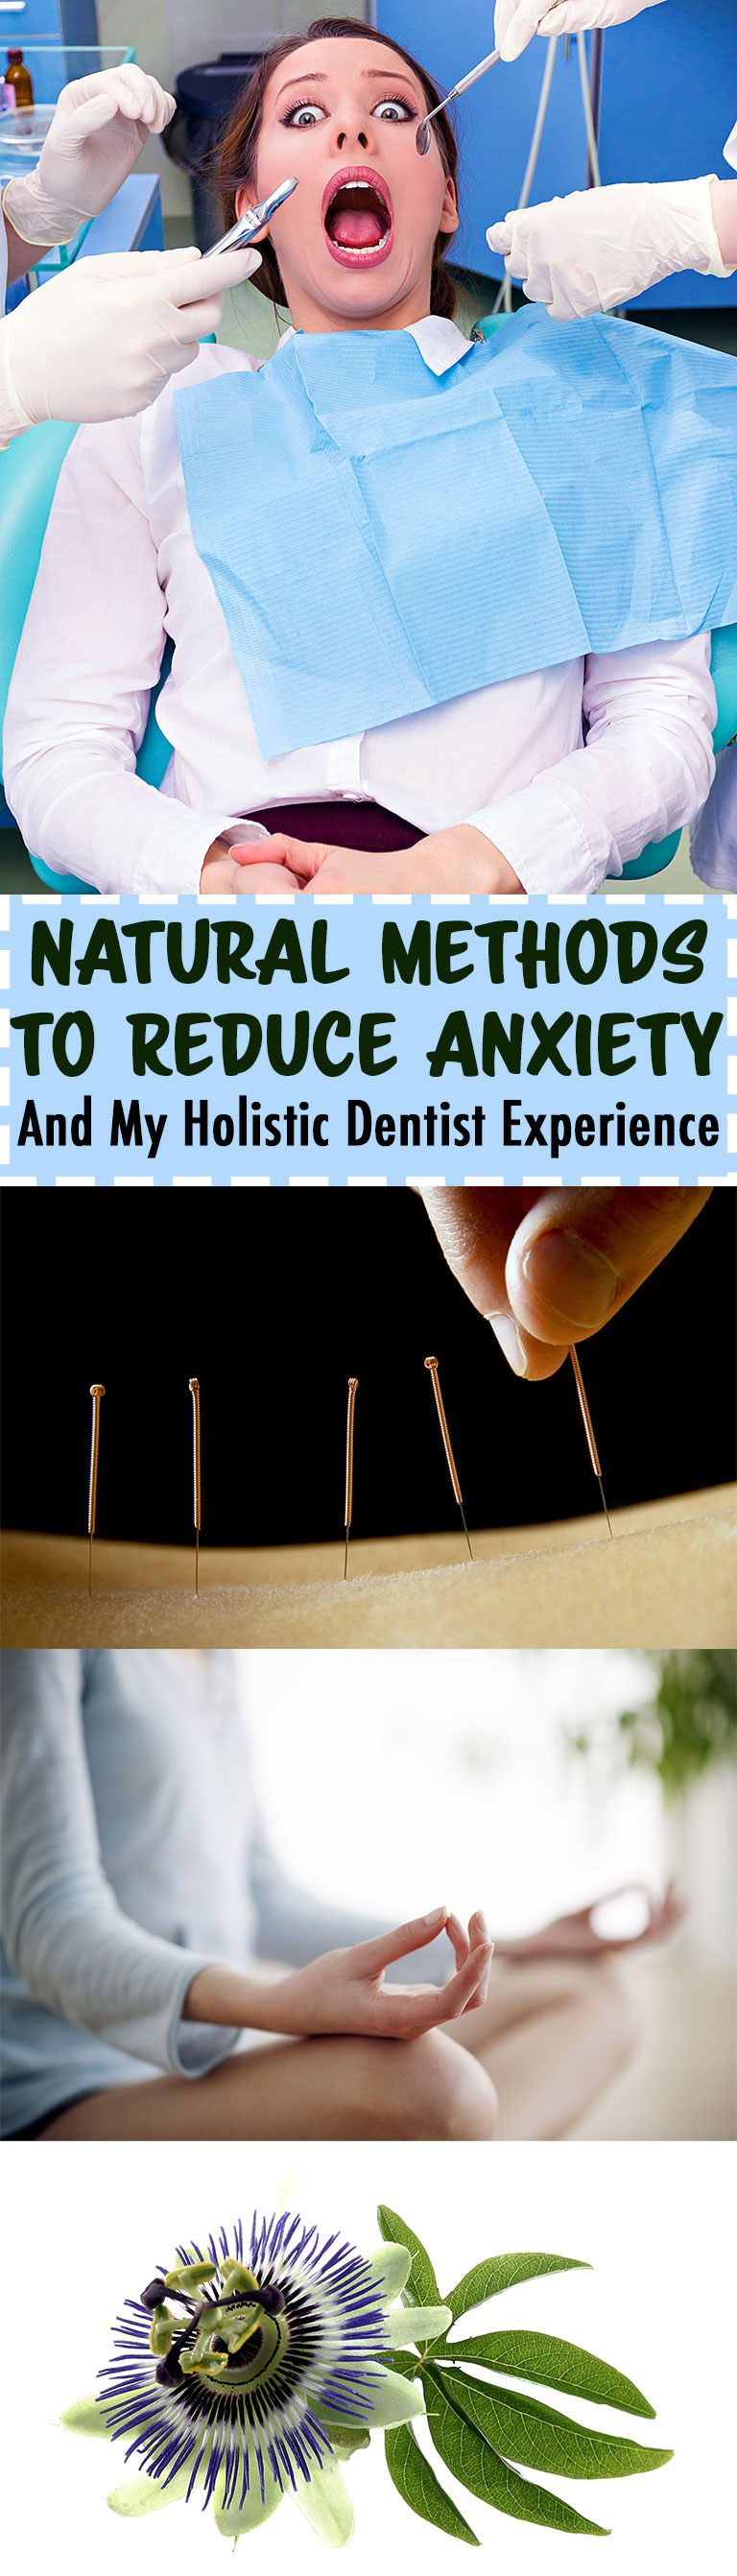 Natural Methods to Reduce Anxiety + My Holistic Dentist Experience // TheCuriousCoconut.com